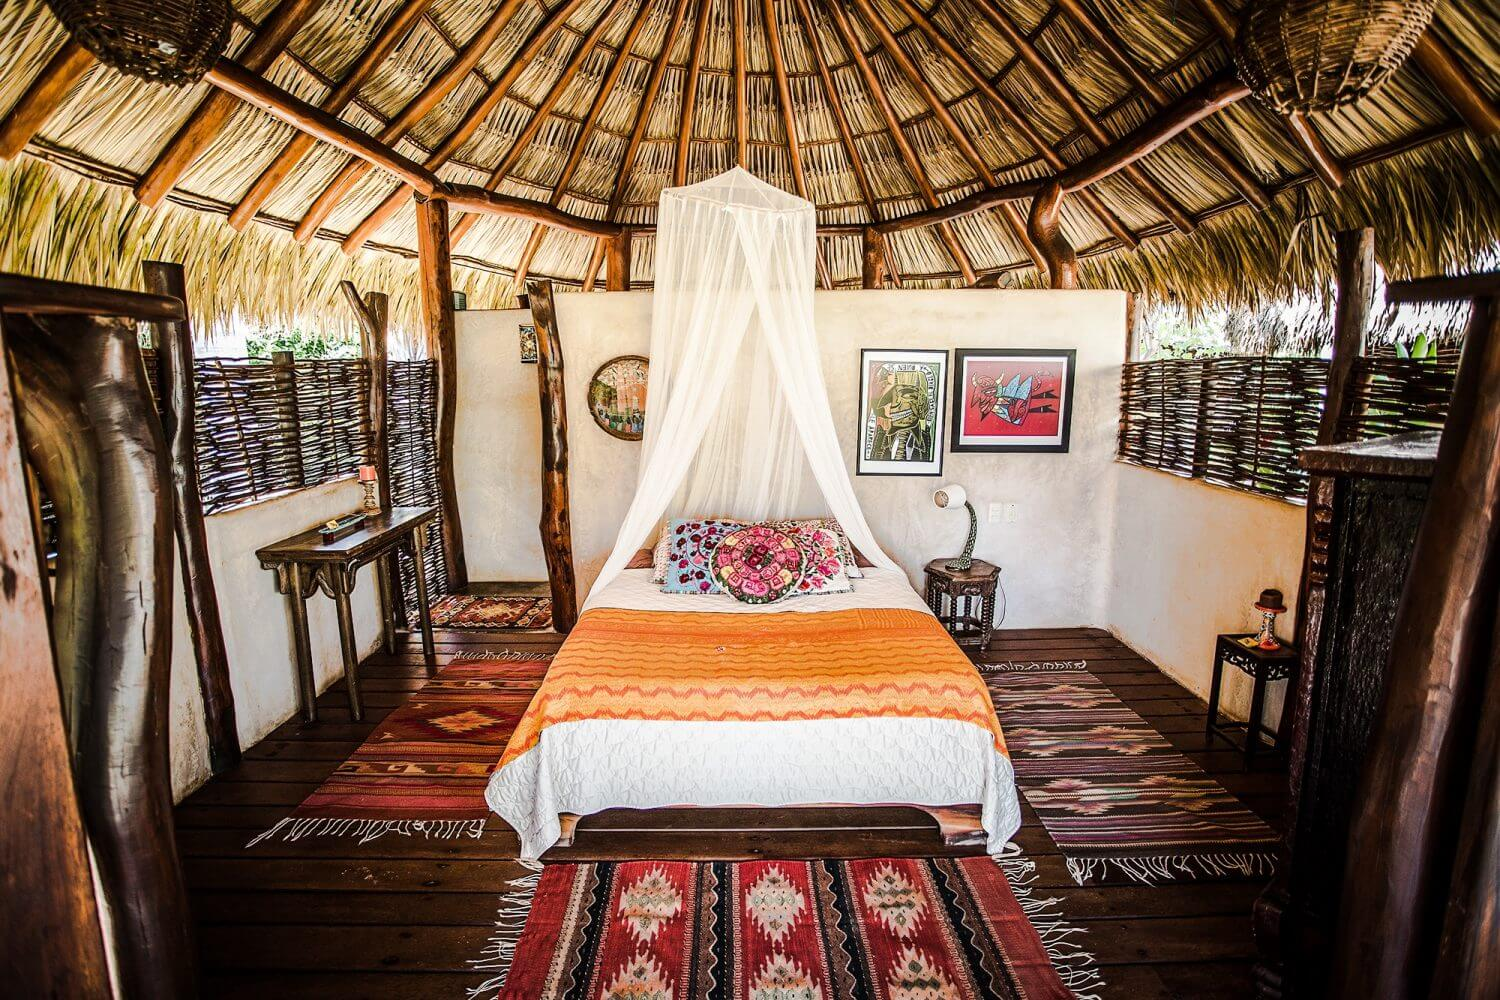 Accomodation _ Bungalow _ Tranquility _ Room _ Present Moment Retreat _ Boutique Hotel _ Spa Resort _ Yoga Retreat _ Restaurant _ Playa Troncones Mexico _ LovaLinda CH Photography